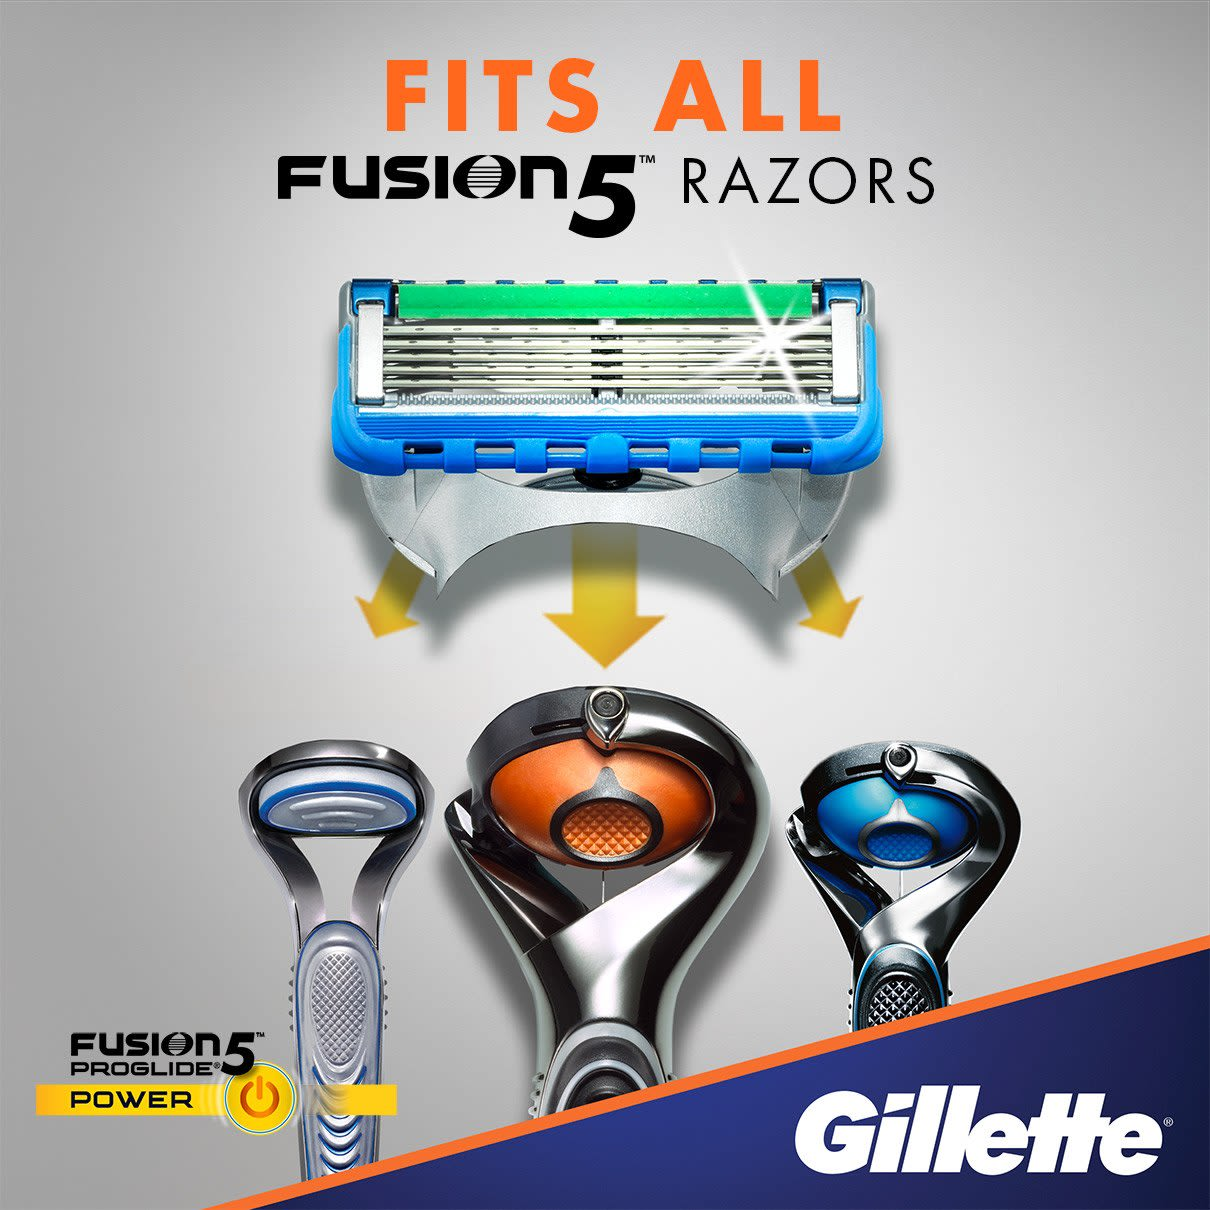 Fits all Fusion5 blade razors